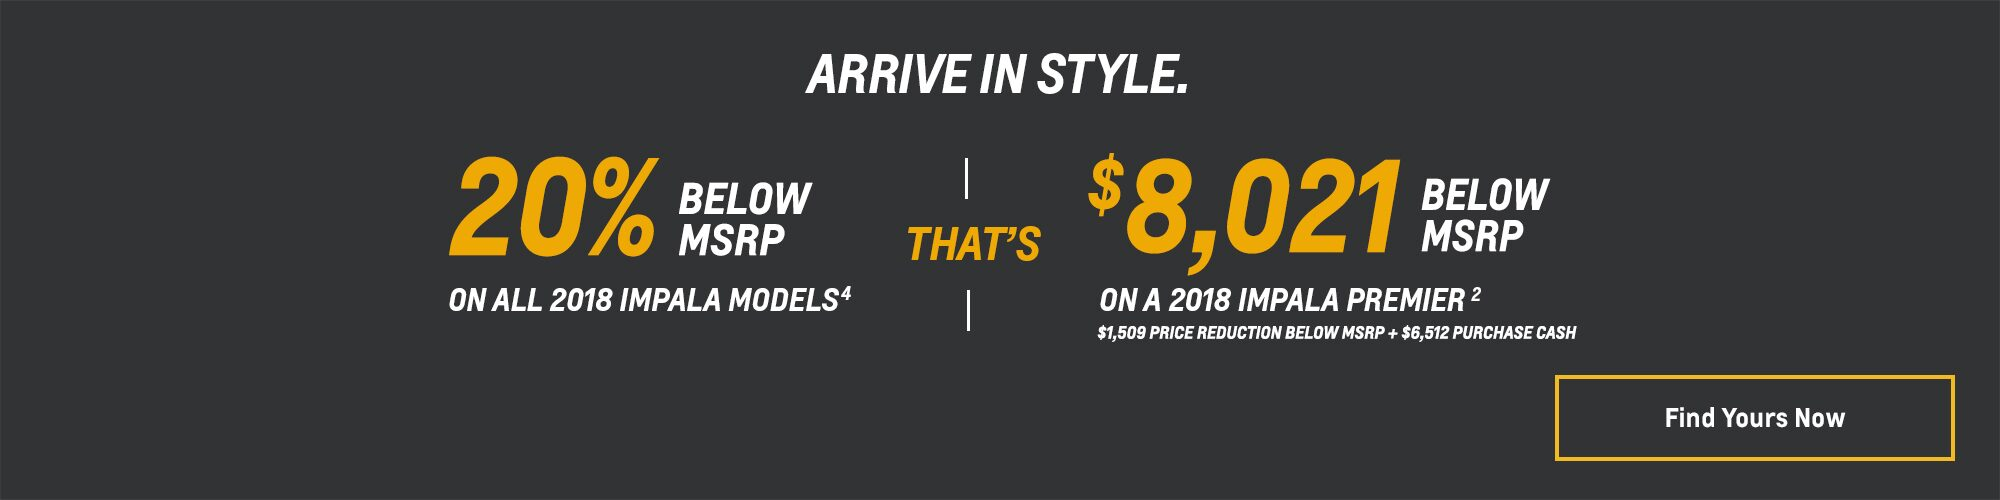 Chevy Deals and Offers: 2018 Impala - 20% Below MSRP